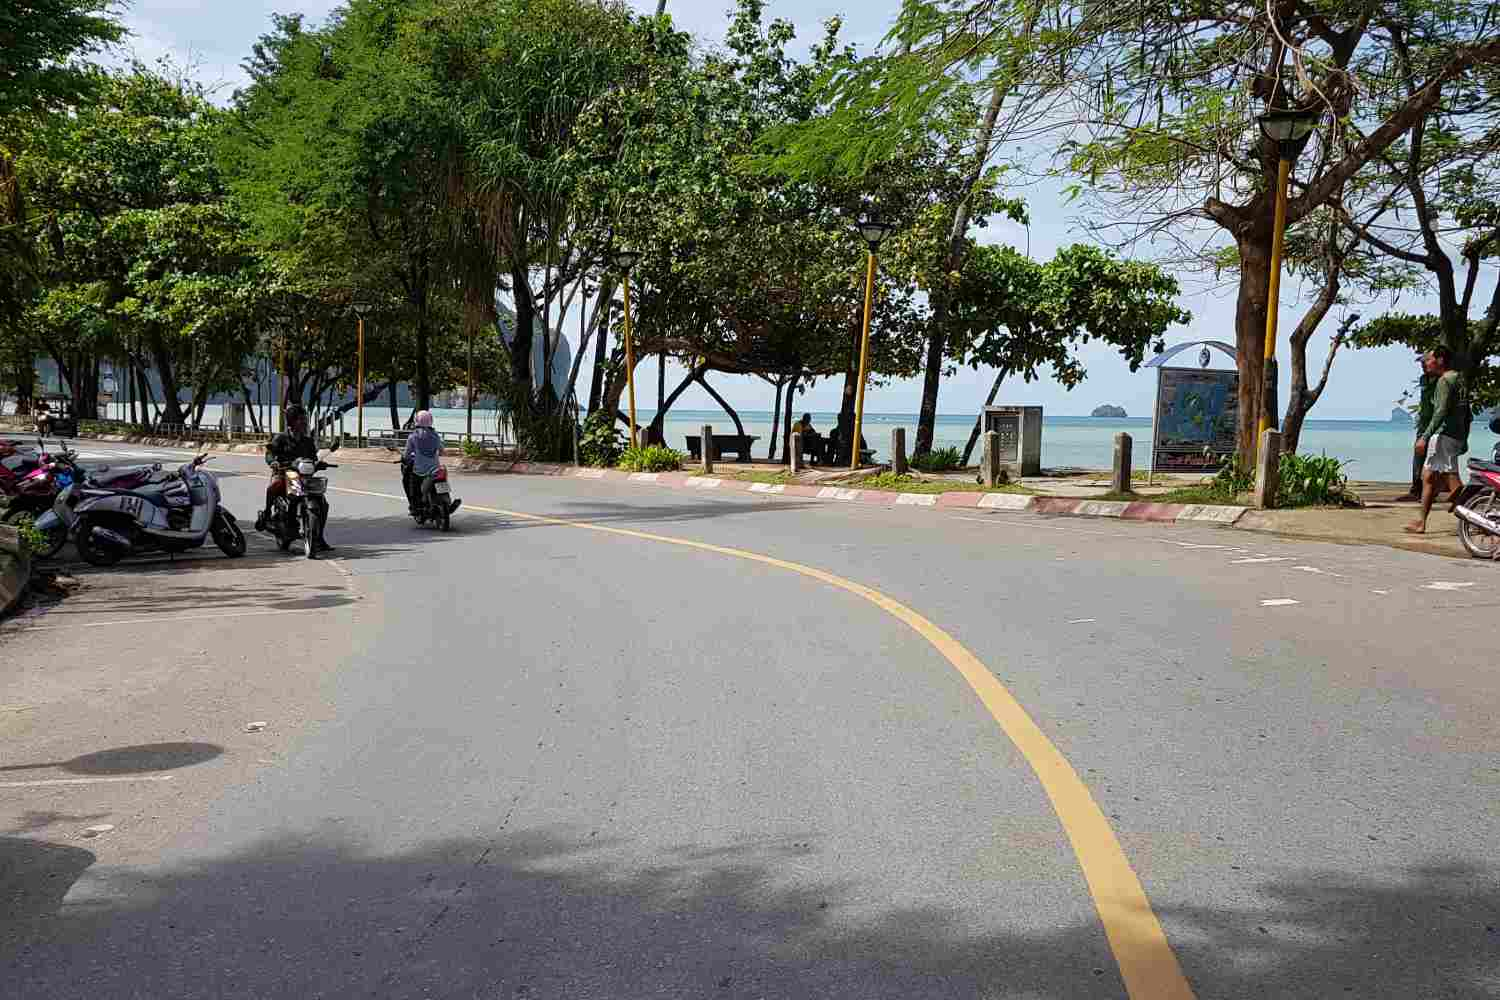 The road along the boulevard of Ao Nang Beach